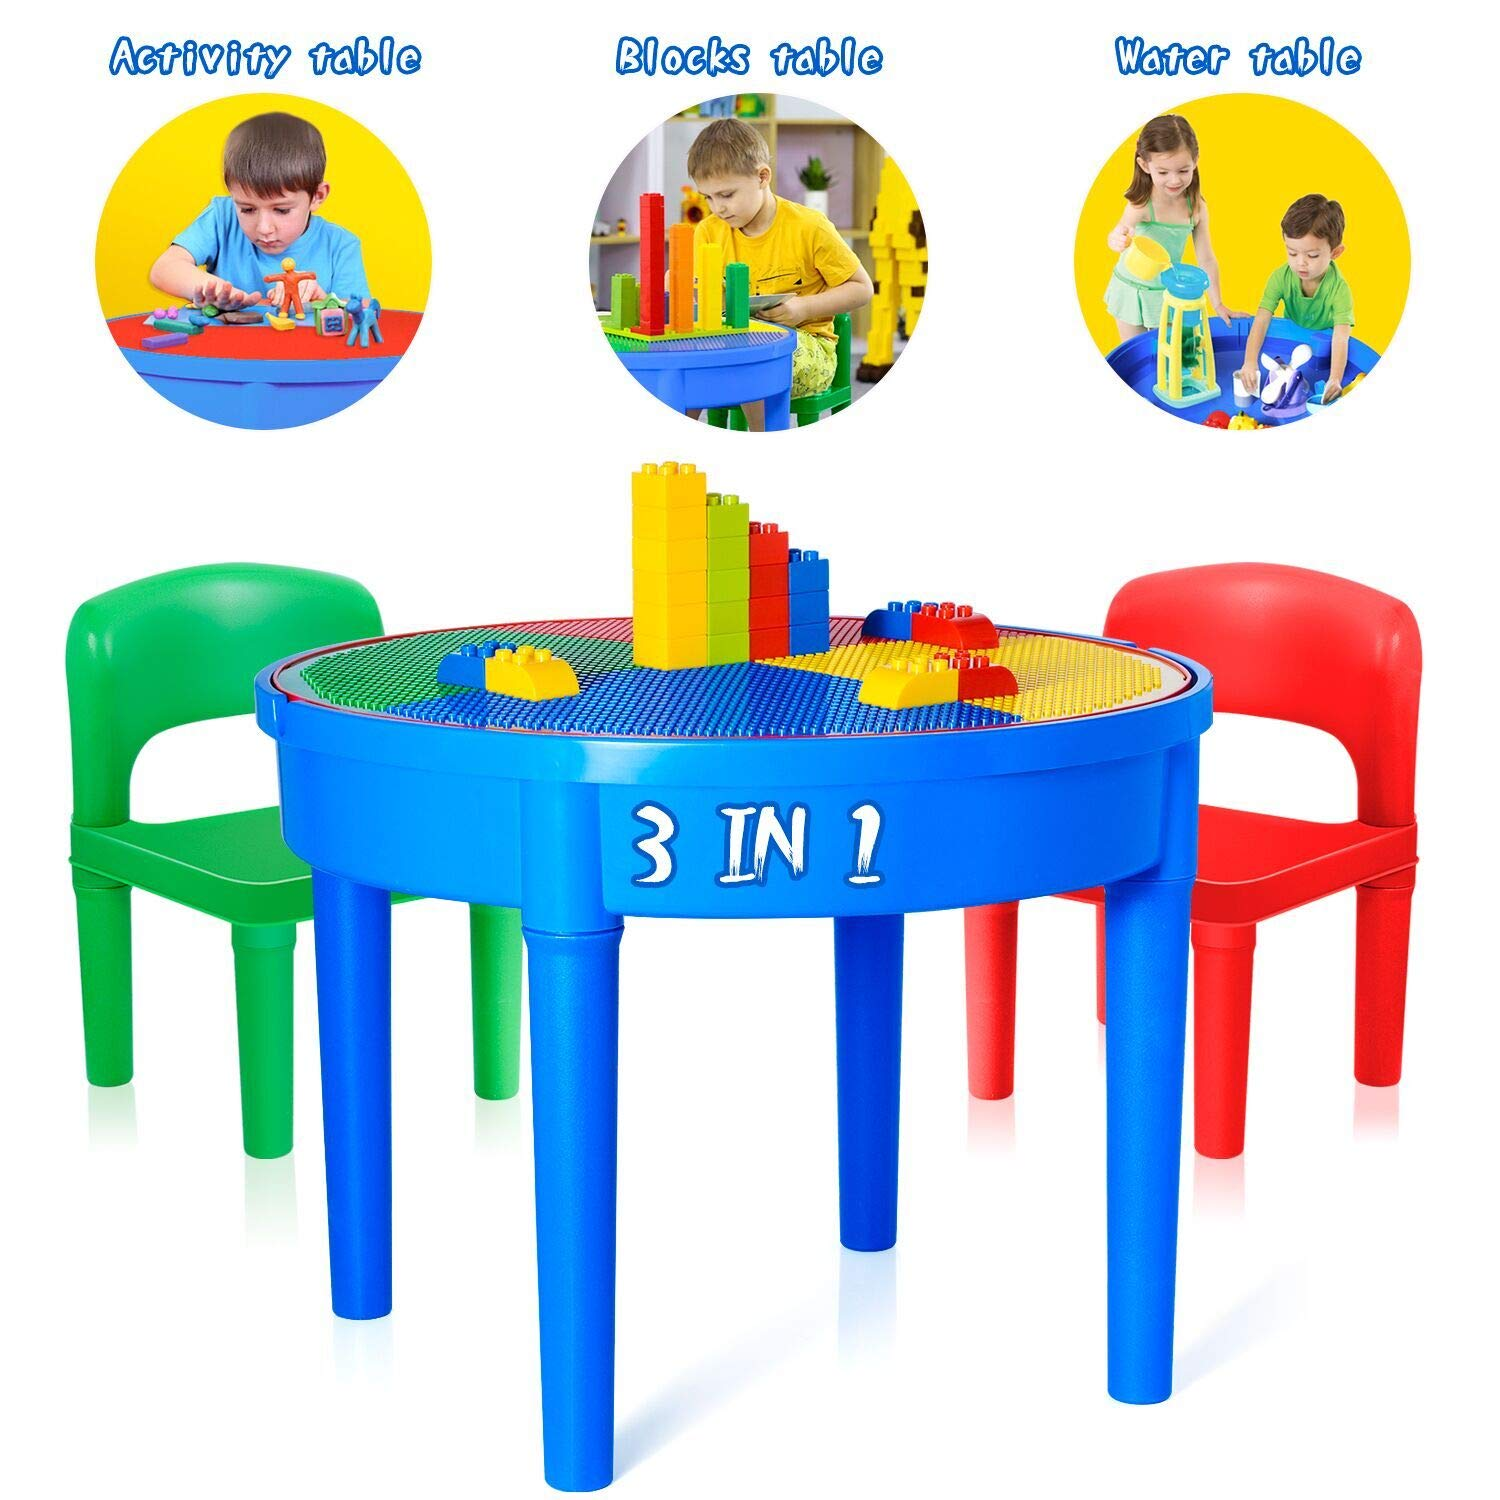 Exercise N Play Kids Activity Table Set - 3 in 1 Round Water Table, Craft Table and Building Brick Table with Storage - Includes 2 Chairs and 25 Jumbo Bricks by EP EXERCISE N PLAY